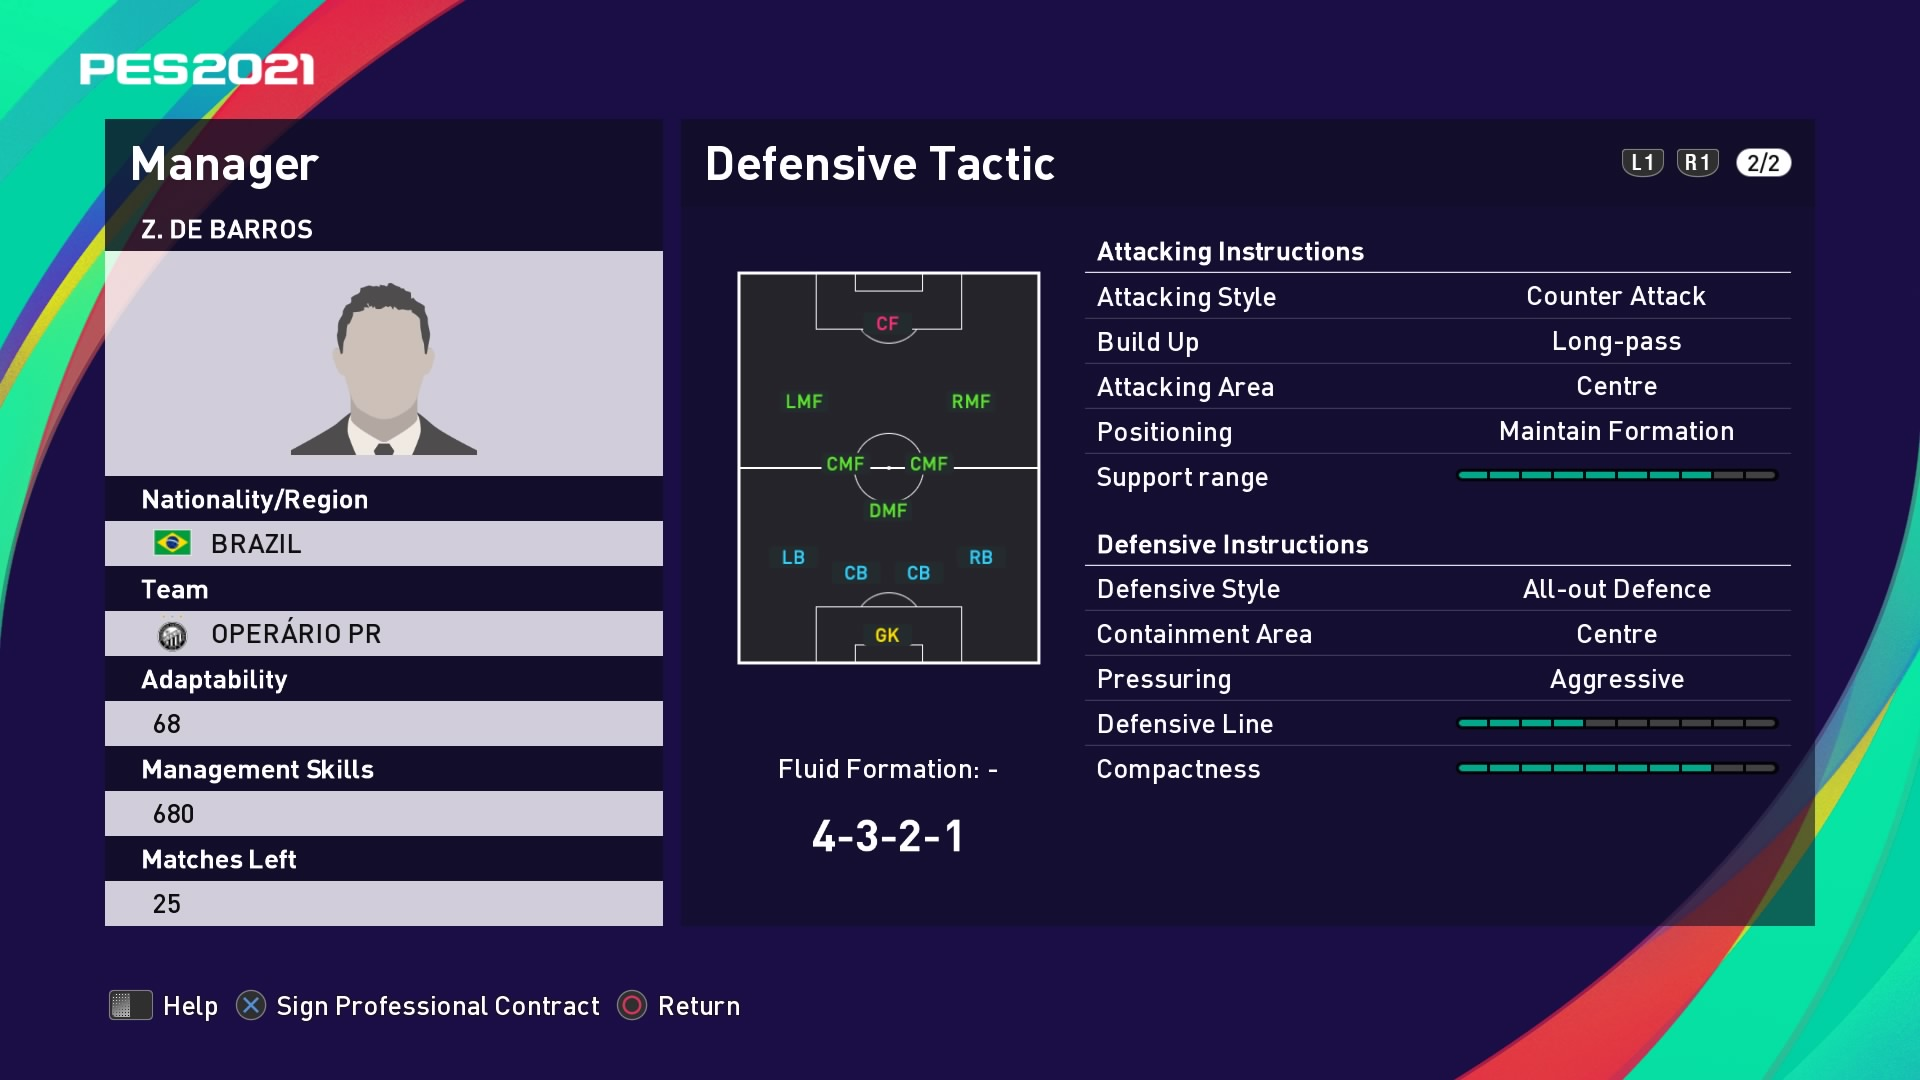 Z. De Barros (Gerson Gusmão) Defensive Tactic in PES 2021 myClub